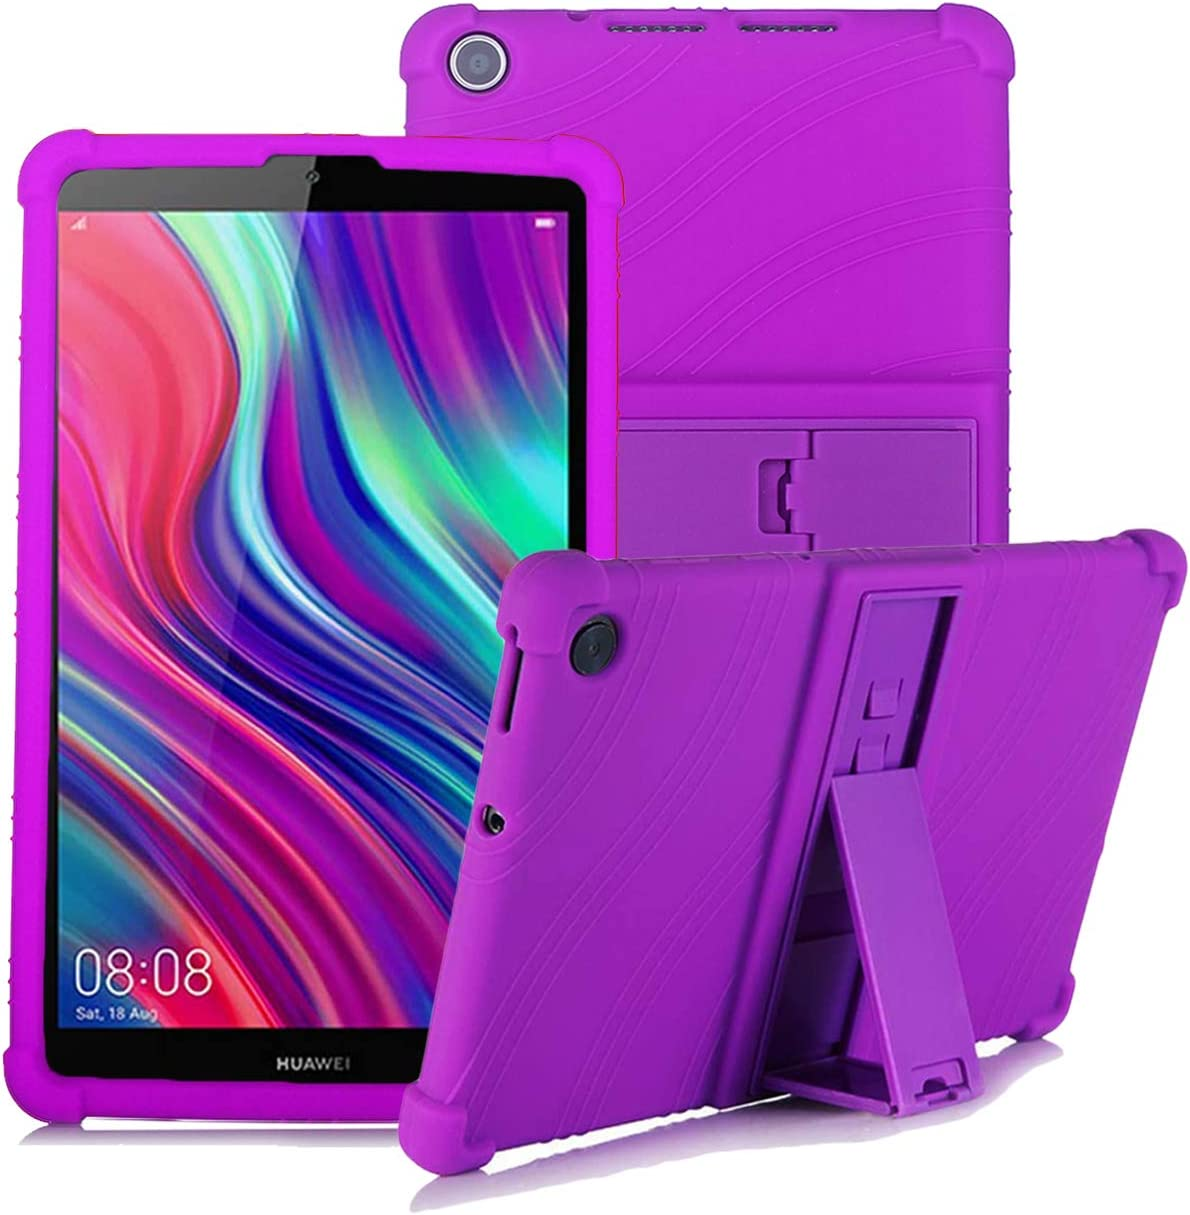 Light Weight Kids Friendly Soft Shock Proof Protective Cover for Huawei MediaPad M5 Lite 8 inch YGoal Silicone Case for Huawei M5 Lite 8 Rose